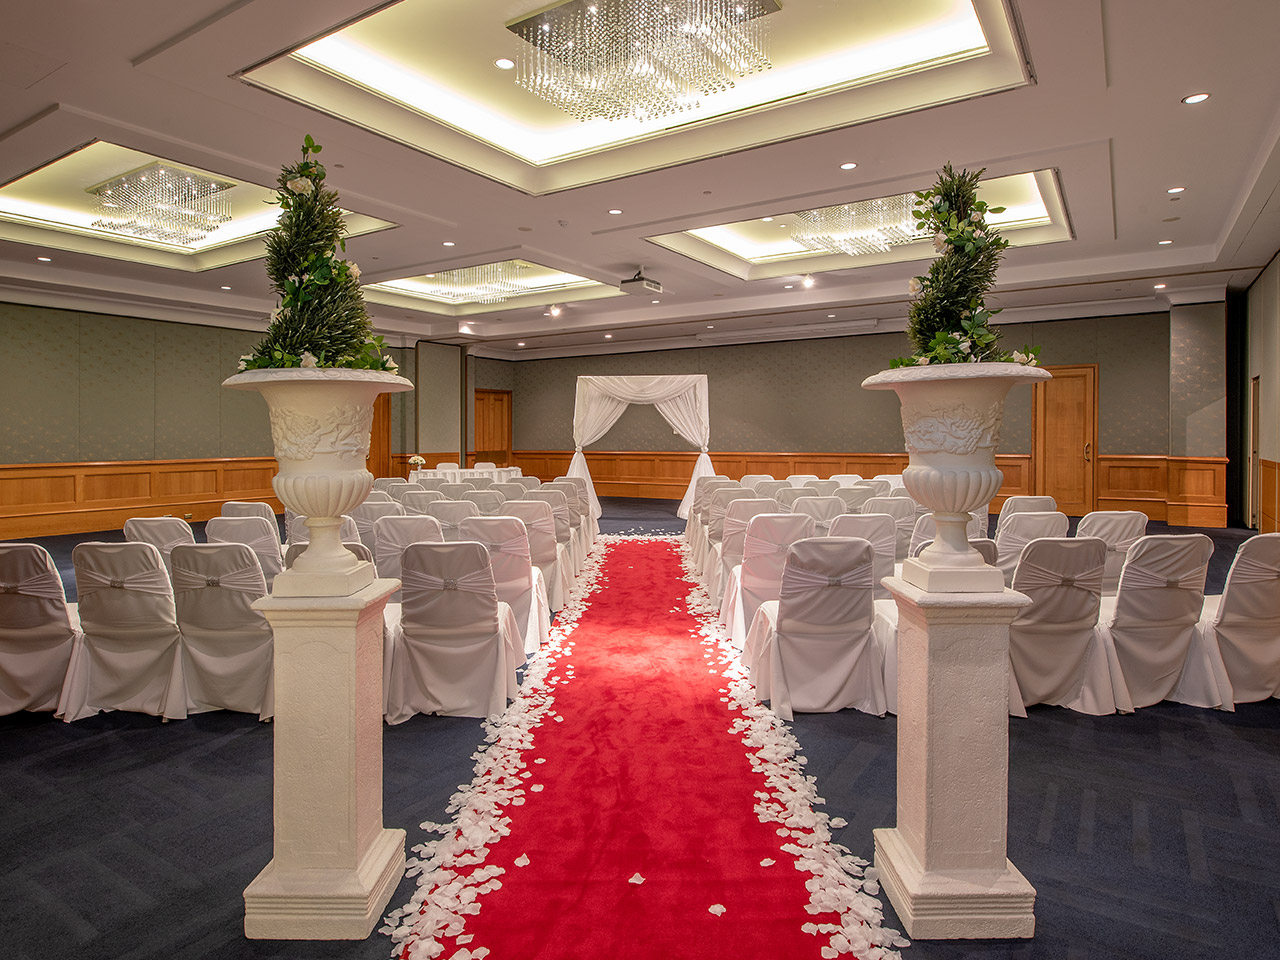 Chairs In Ceremony Setup With Red Carpet, Flower Petals On the Floor, And Wood Drap